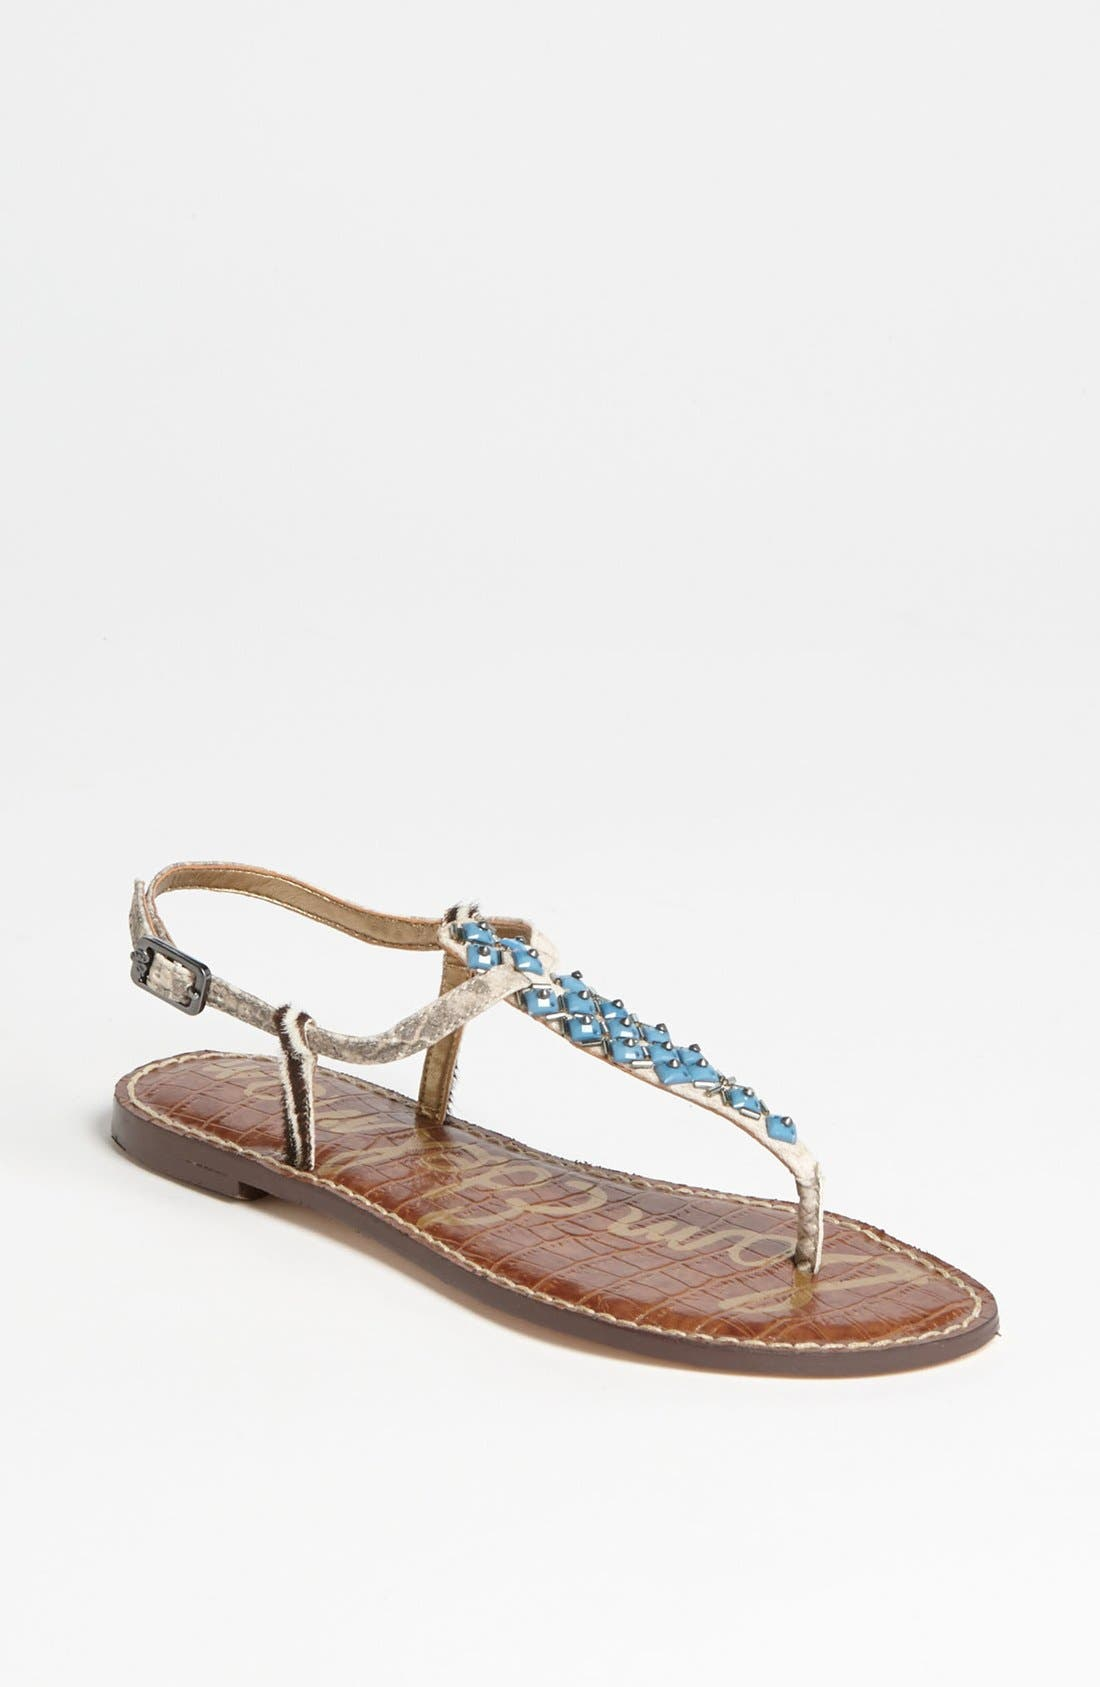 Alternate Image 1 Selected - Sam Edelman 'Gaines' Sandal